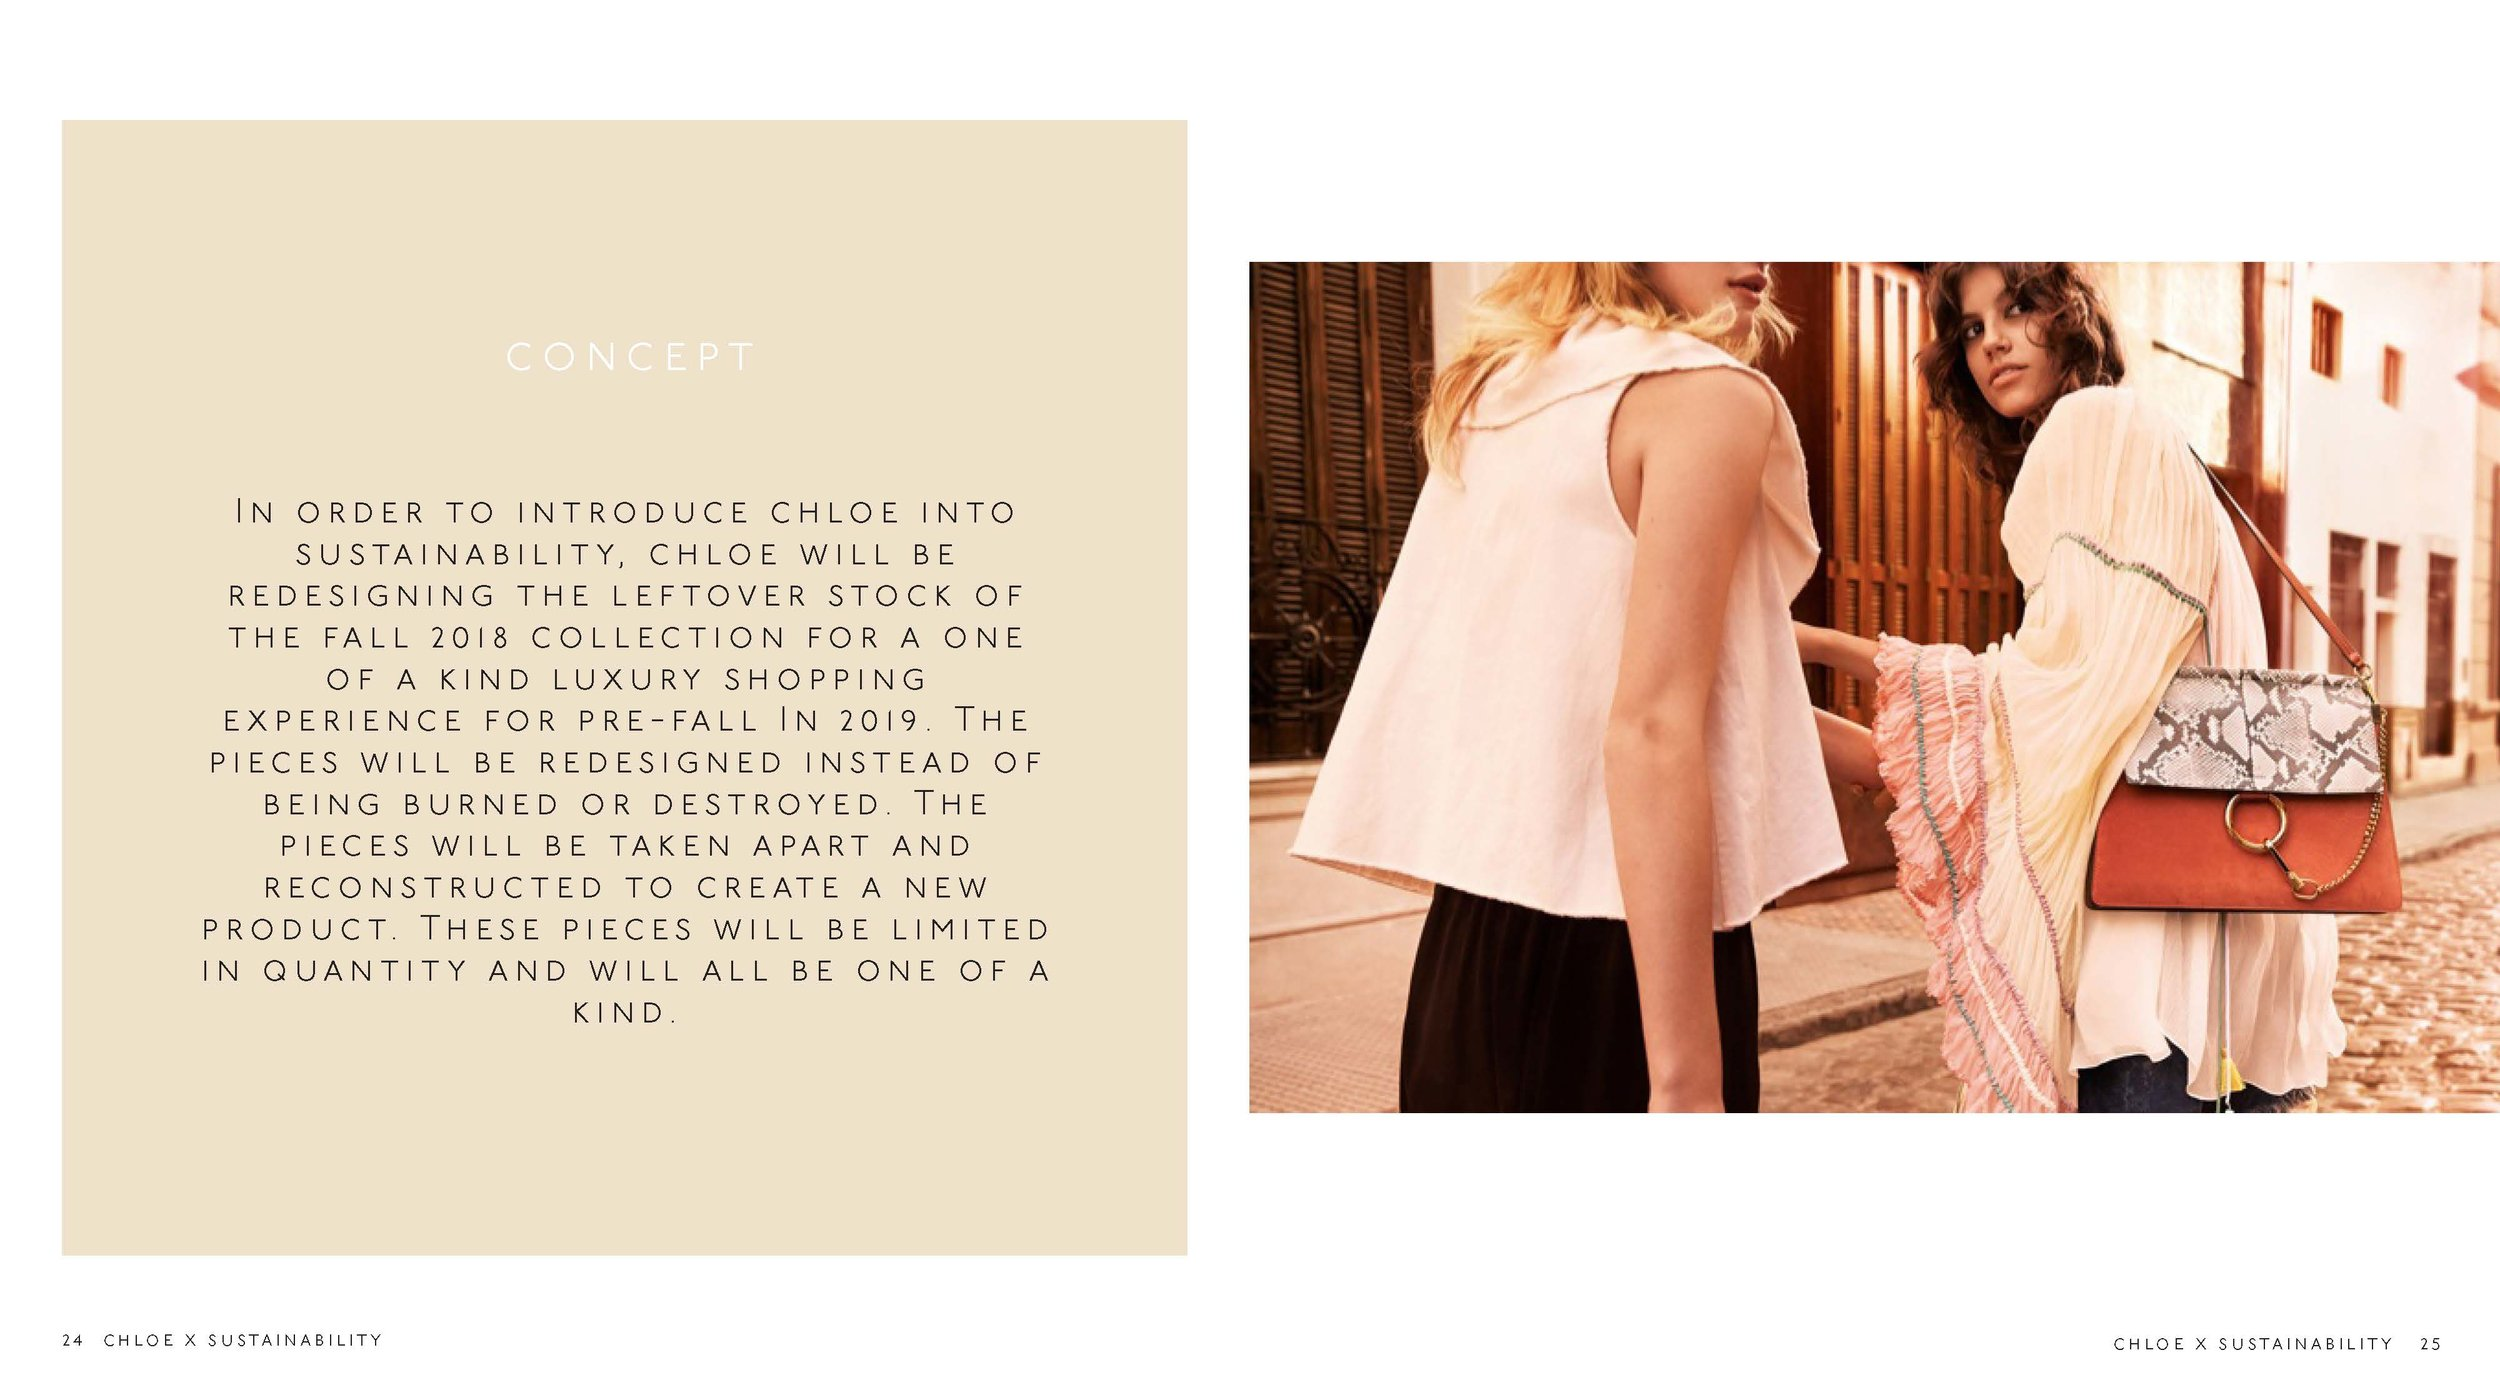 CHLOE X SUSTAINABIILITY